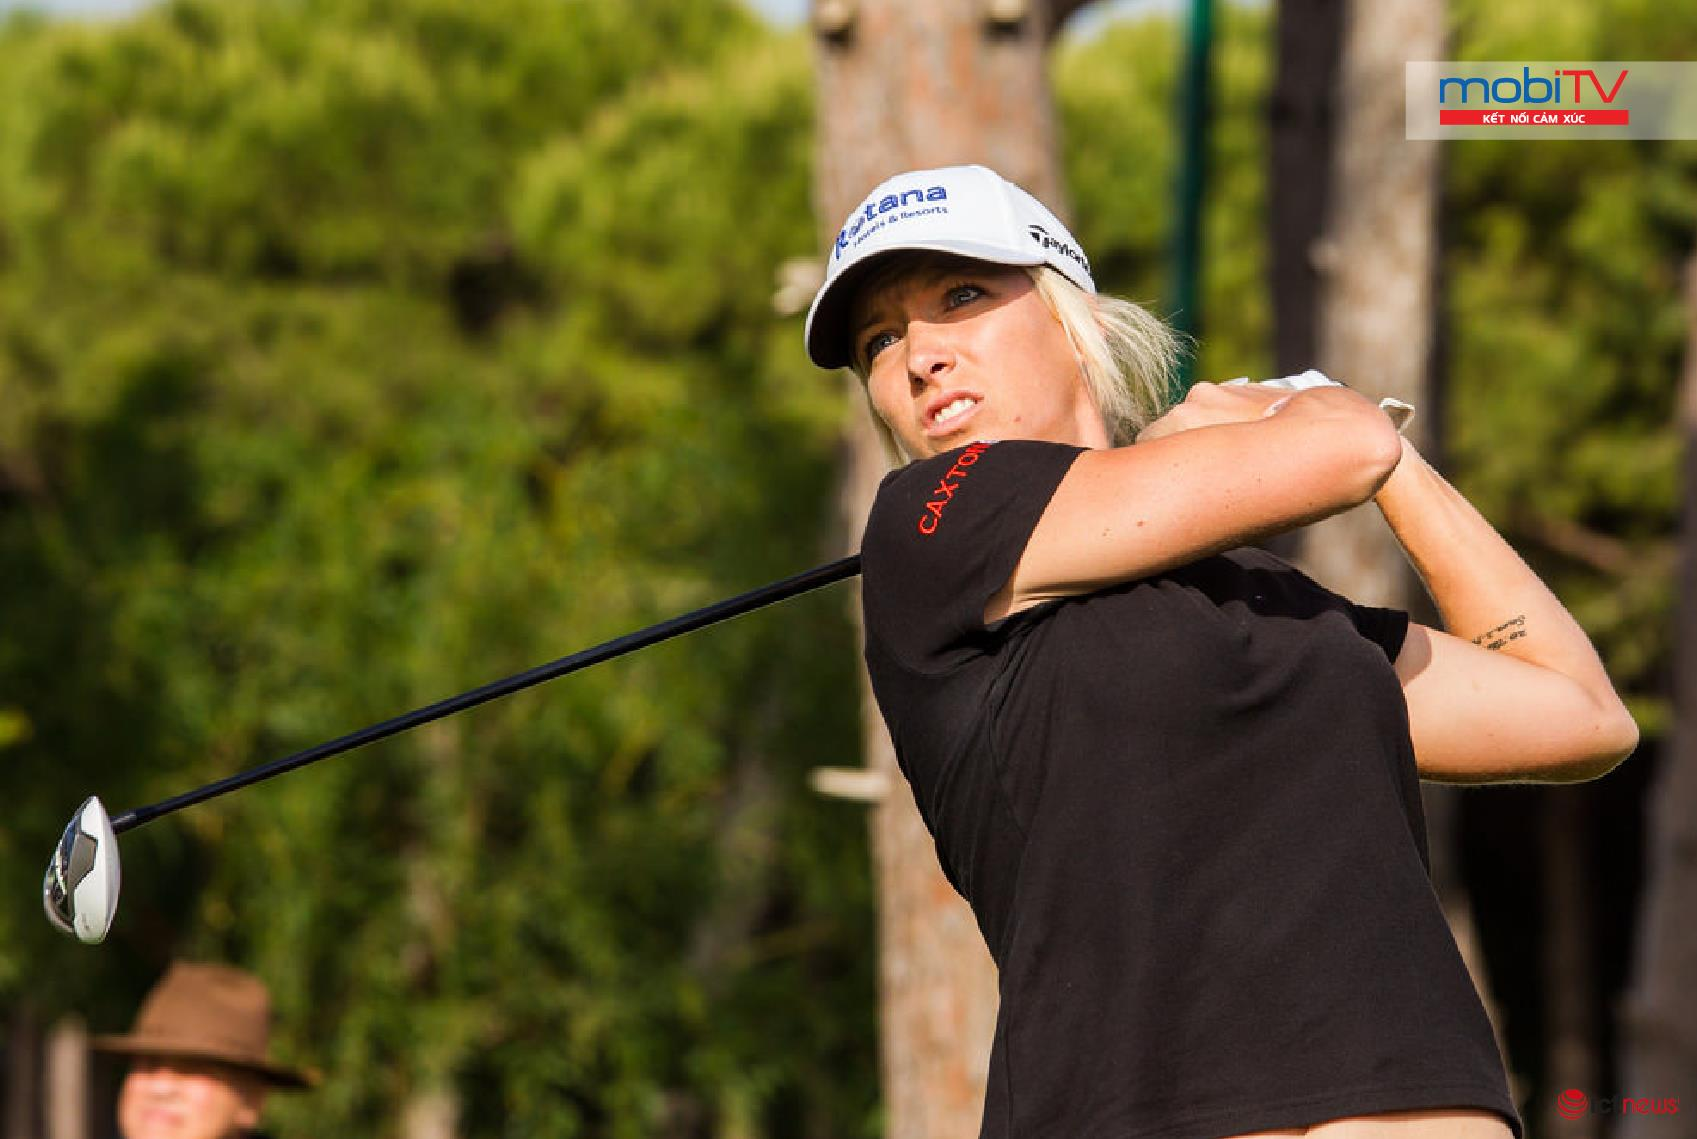 mobitv-mua-ban-quyen-giai-golf-Ladies-European-Tour